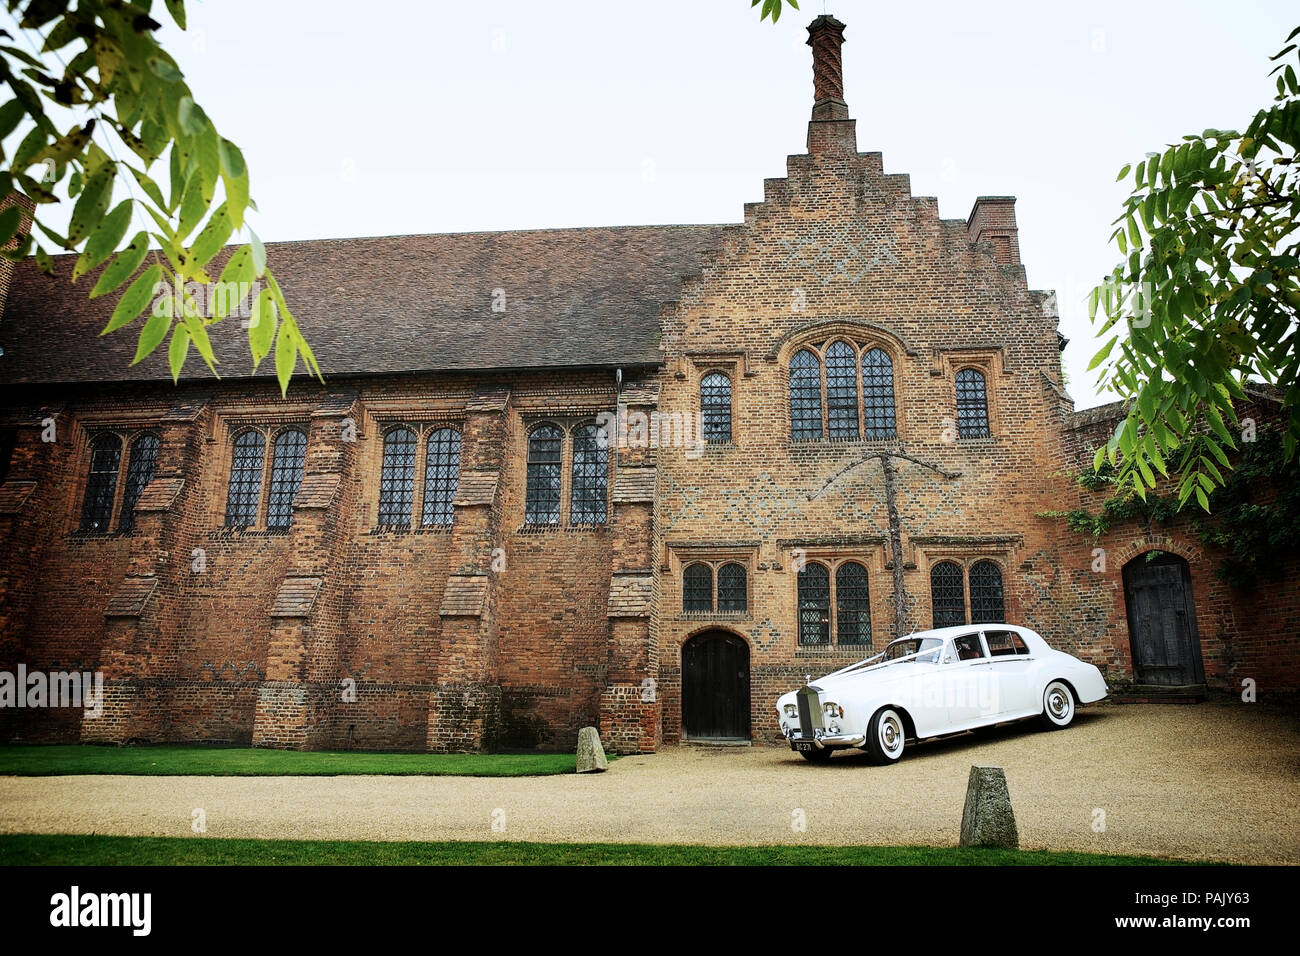 The Old Palace, Hatfield House, Hertfordshire, UK. With white Rolls Royce wedding car. - Stock Image